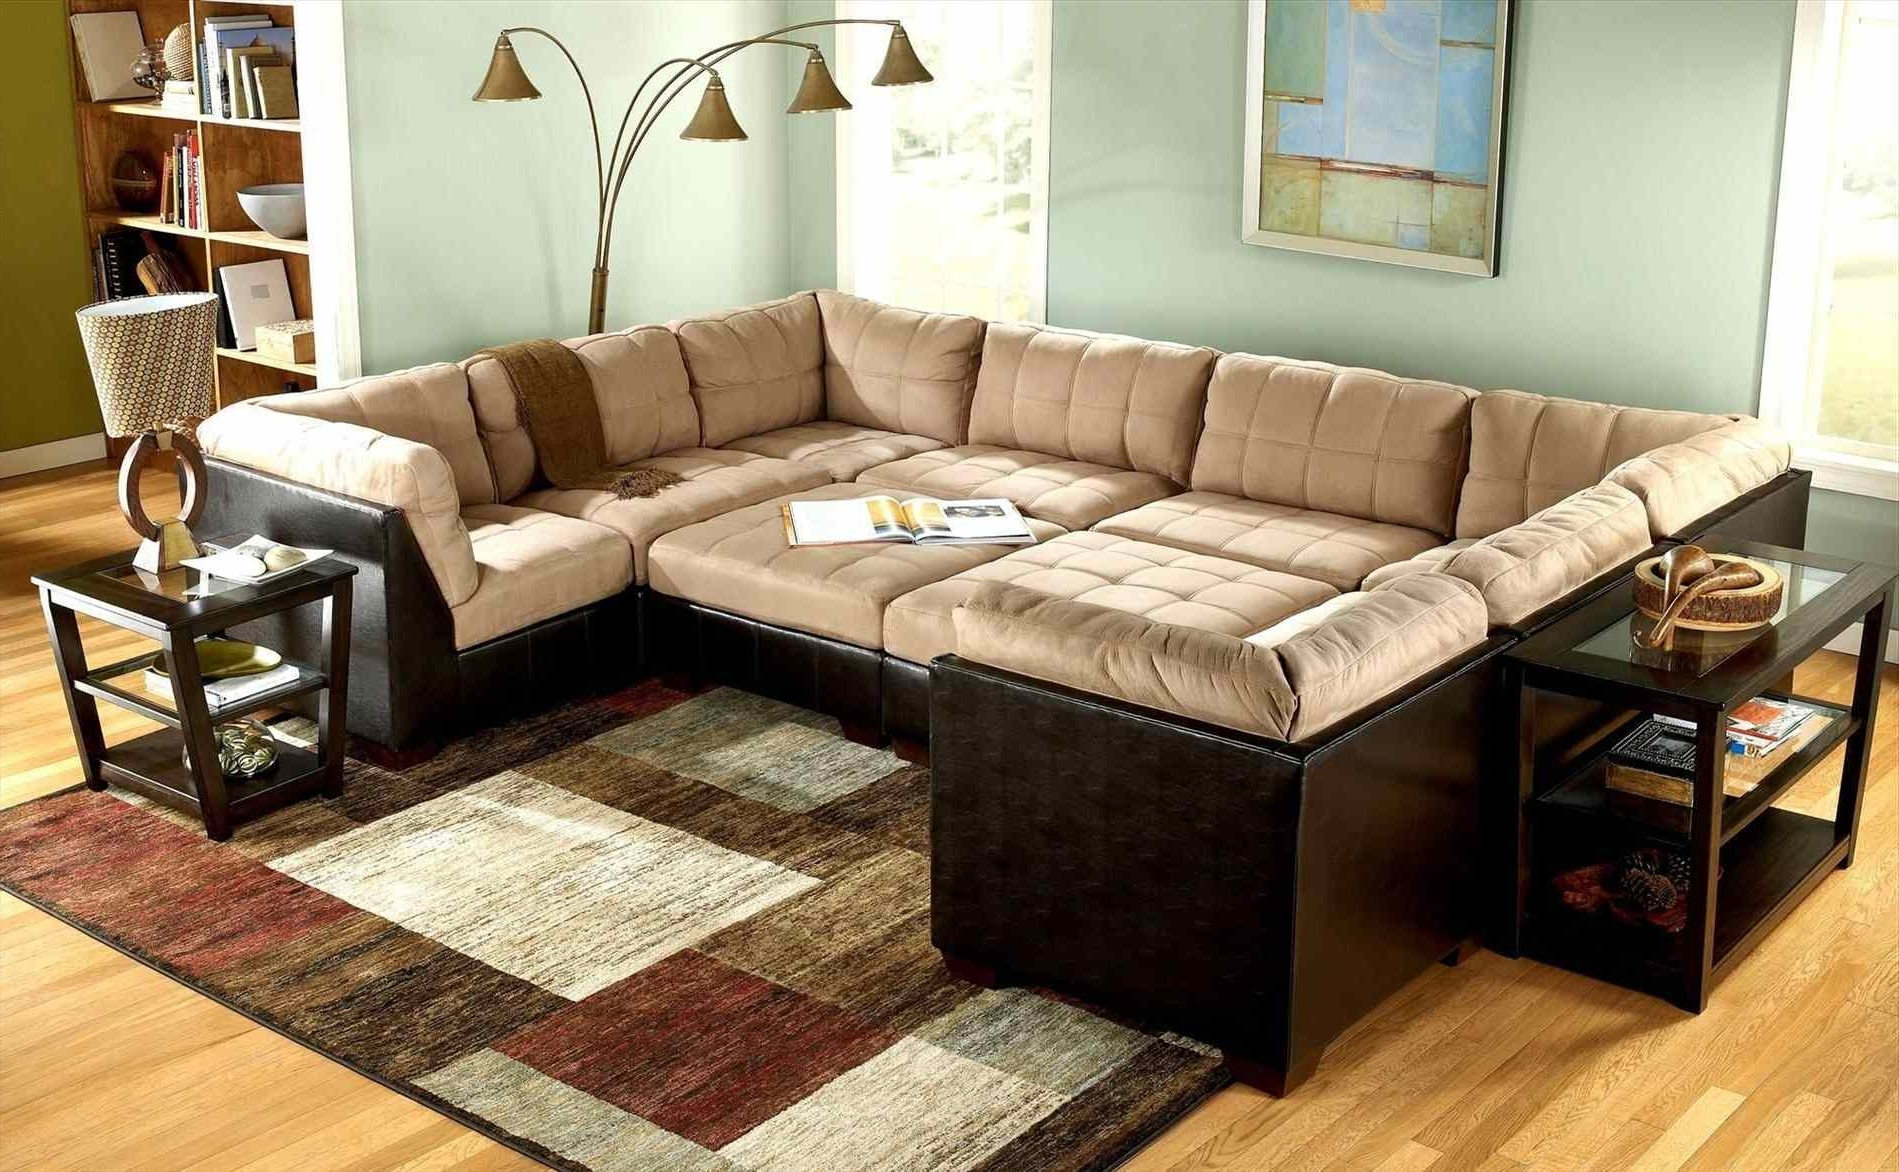 Best 20 Of Sectional Couches With Large Ottoman